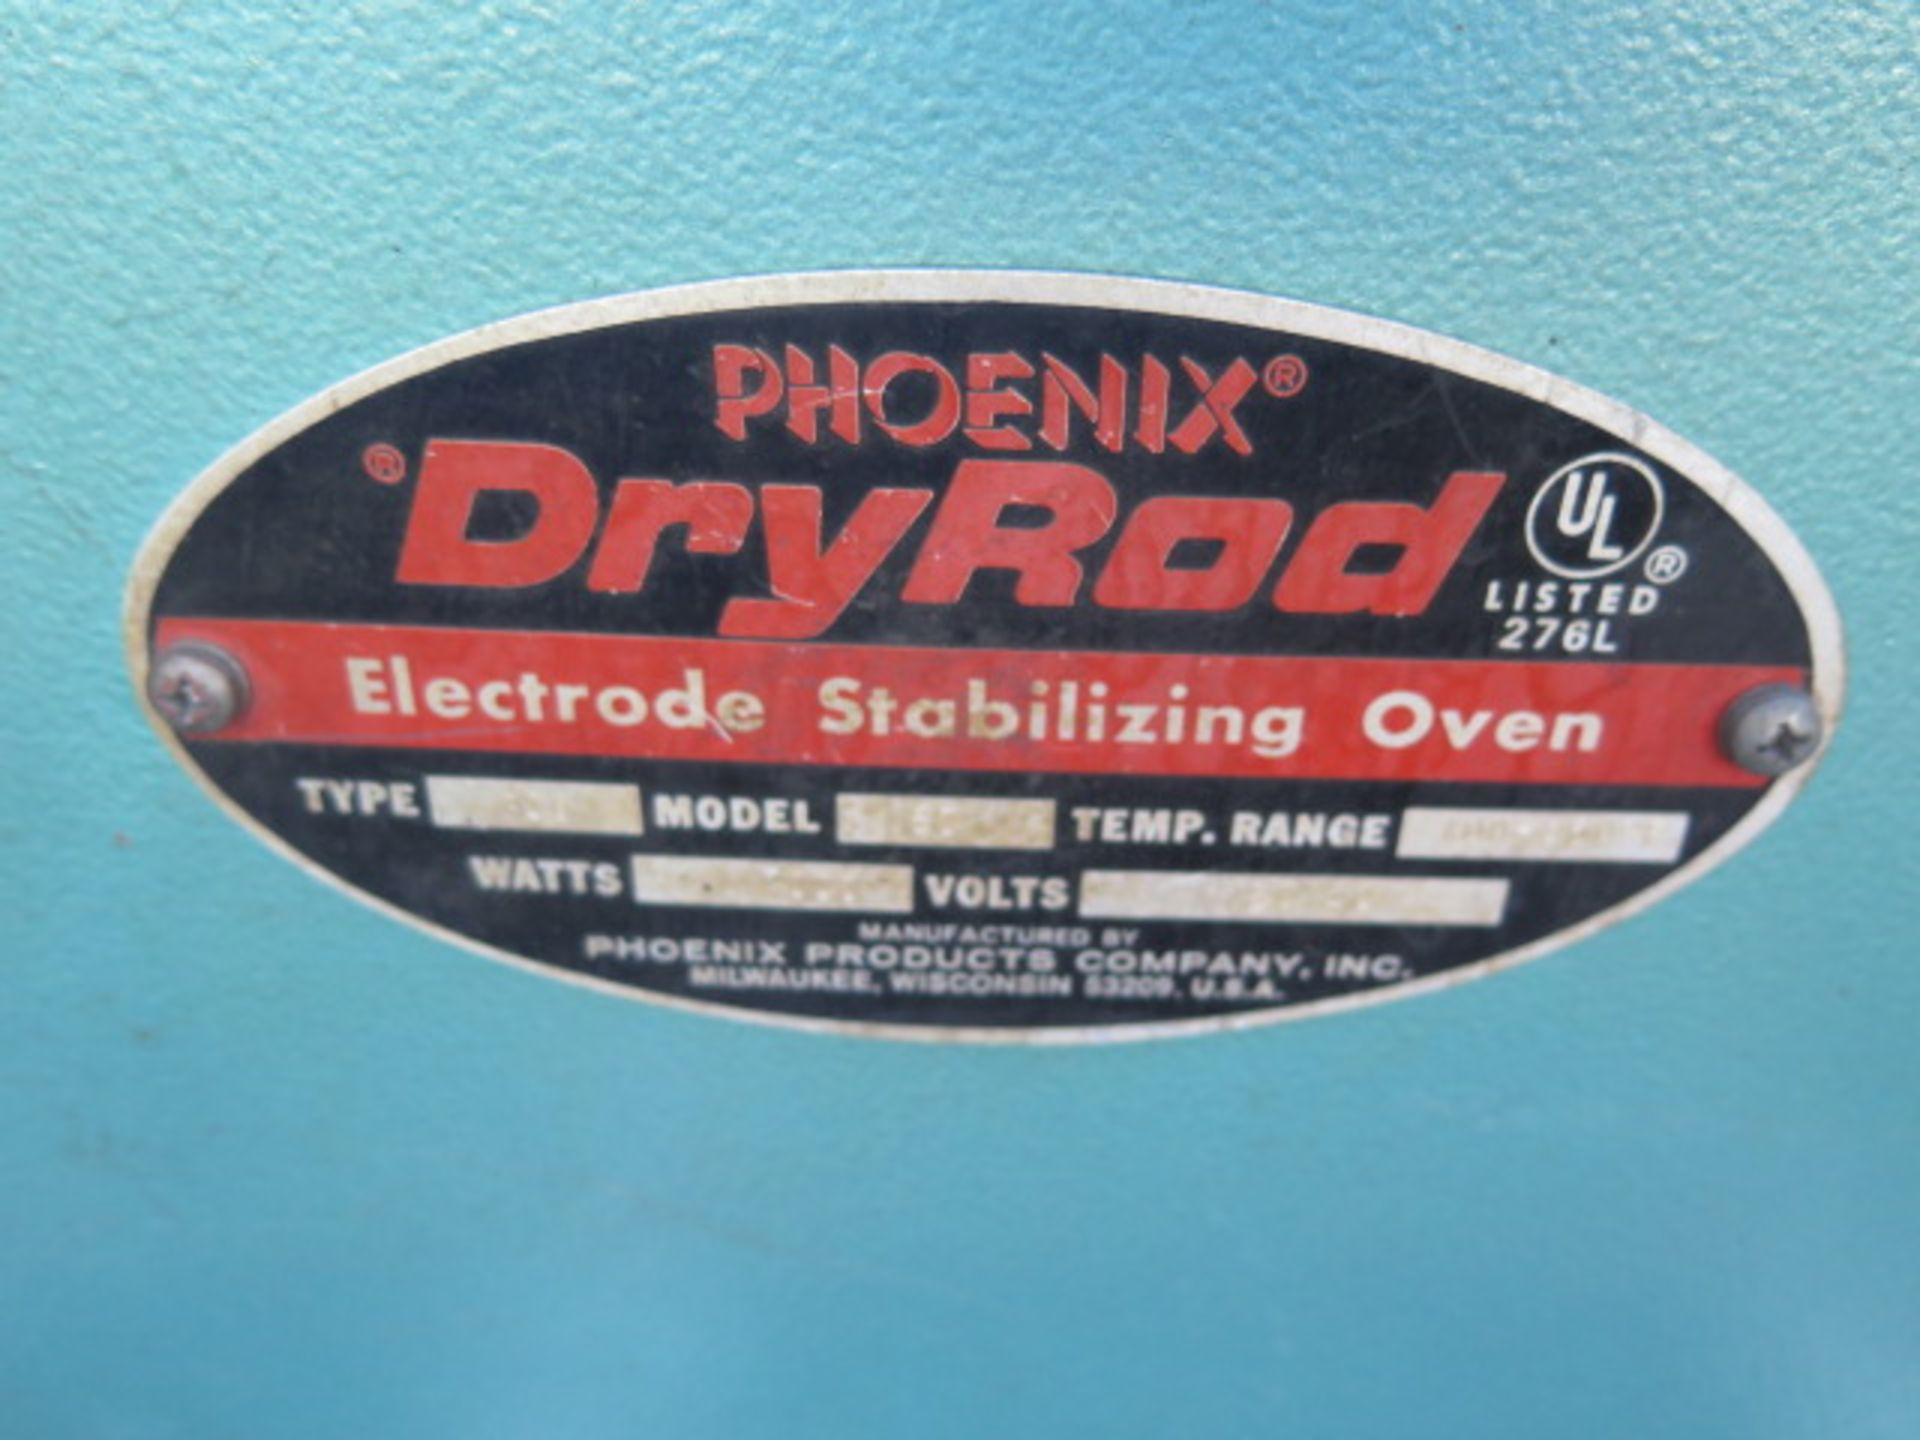 Phoenix Dryrod Edlectrode Stabilization ven and Cart (SOLD AS-IS - NO WARRANTY) - Image 4 of 9